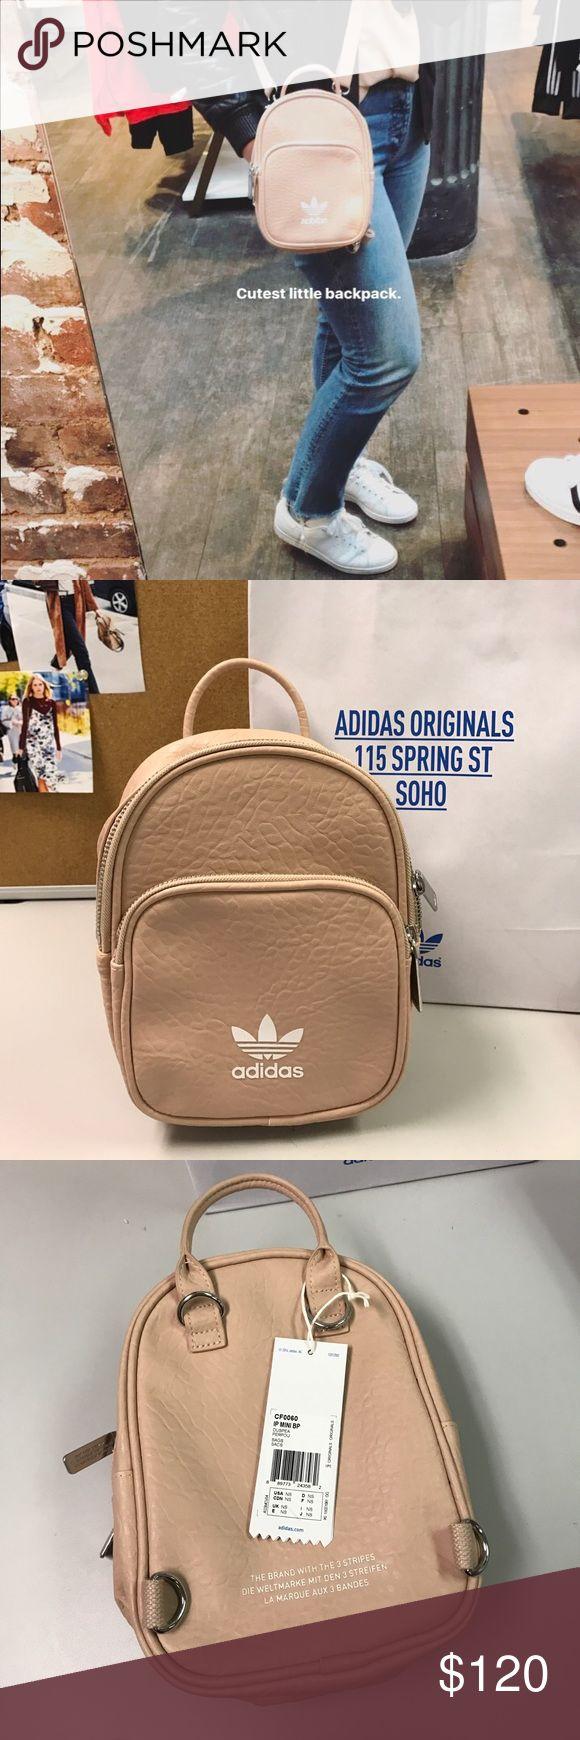 Adidas Originals Mini Backpack Soo in love with this bag!  Can be worn as backpack or cross body. Super cute and on trend. Sold out everywhere! NWT  Adidas Bags Backpacks